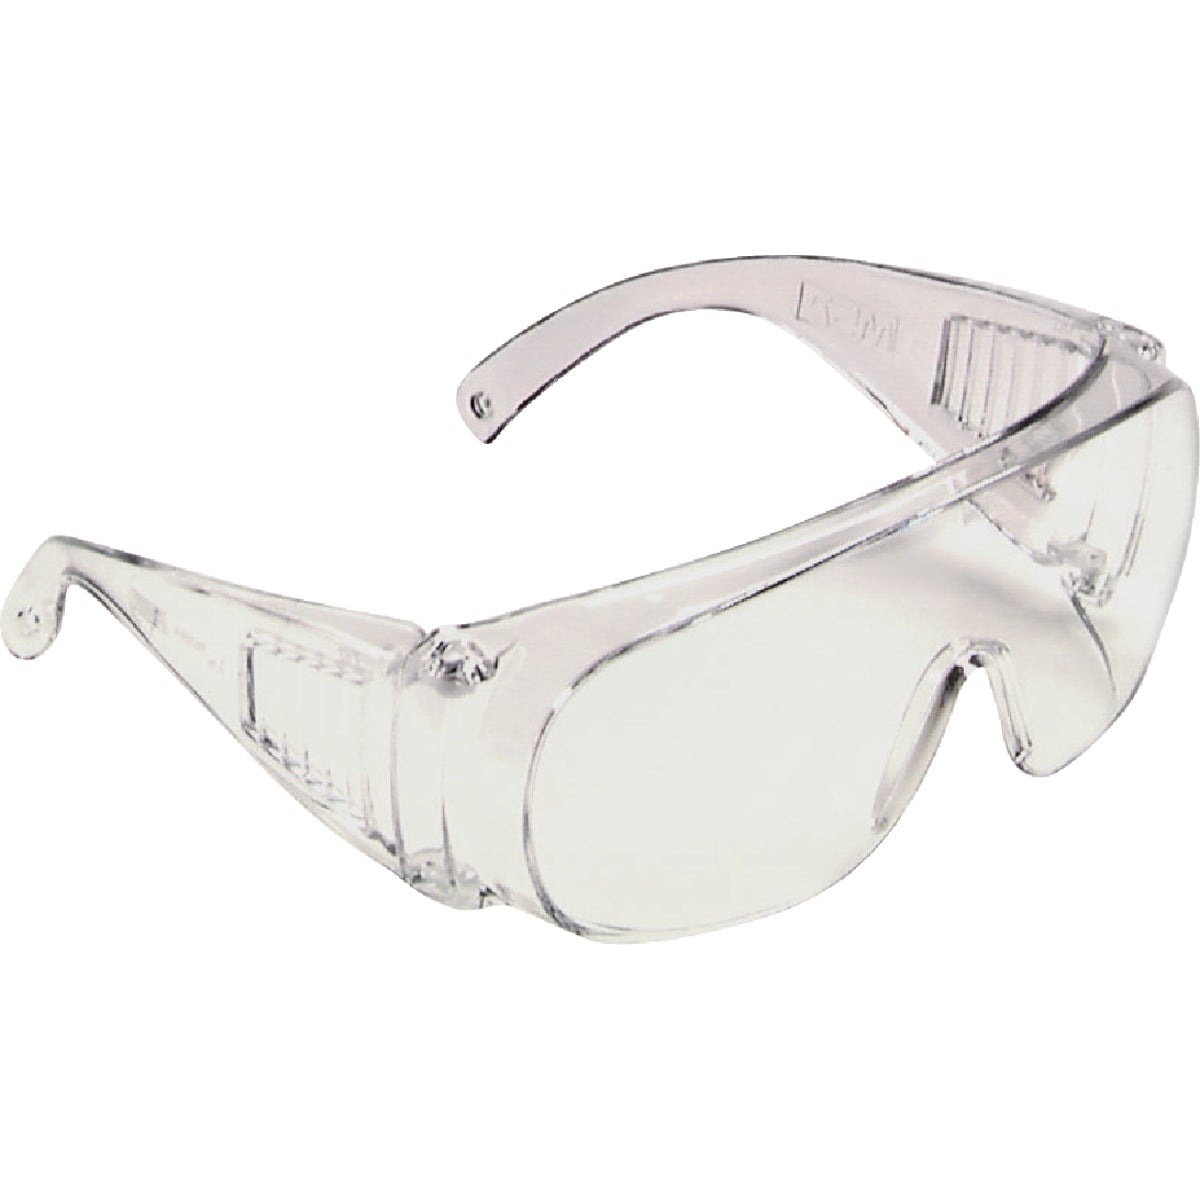 CLEAR SAFETY GLASSES - 817691 by Msa Safety